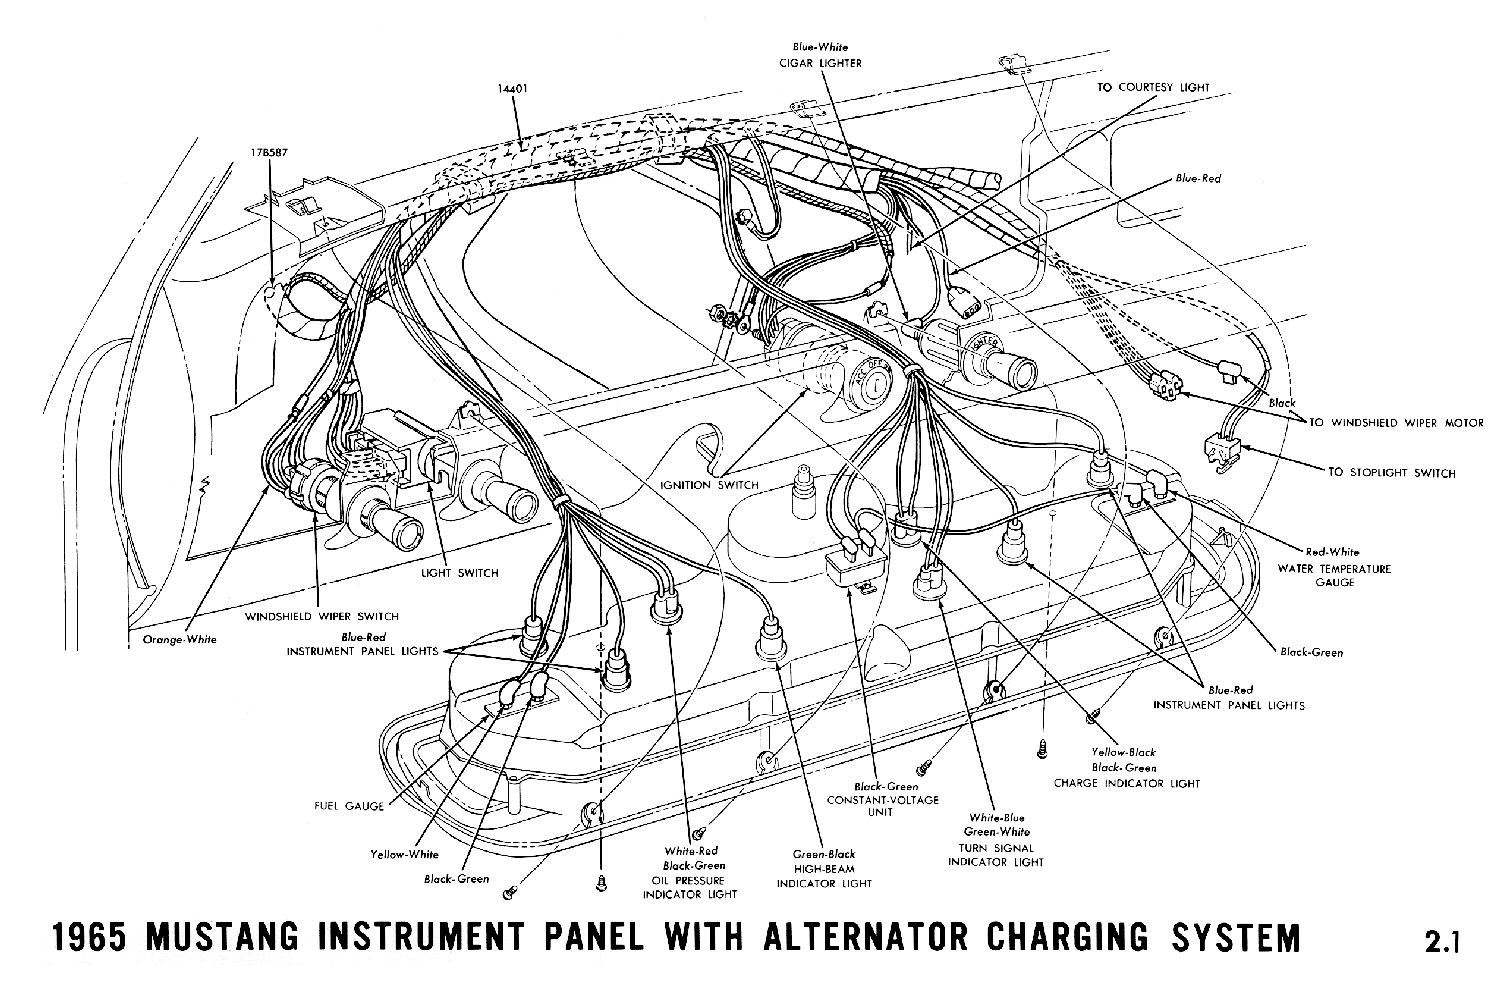 1965 Mustang Headlight Wiring Diagram Schematic Guide And 68 Diagrams Average Joe Restoration Rh Averagejoerestoration Com 1968 Camaro Switch